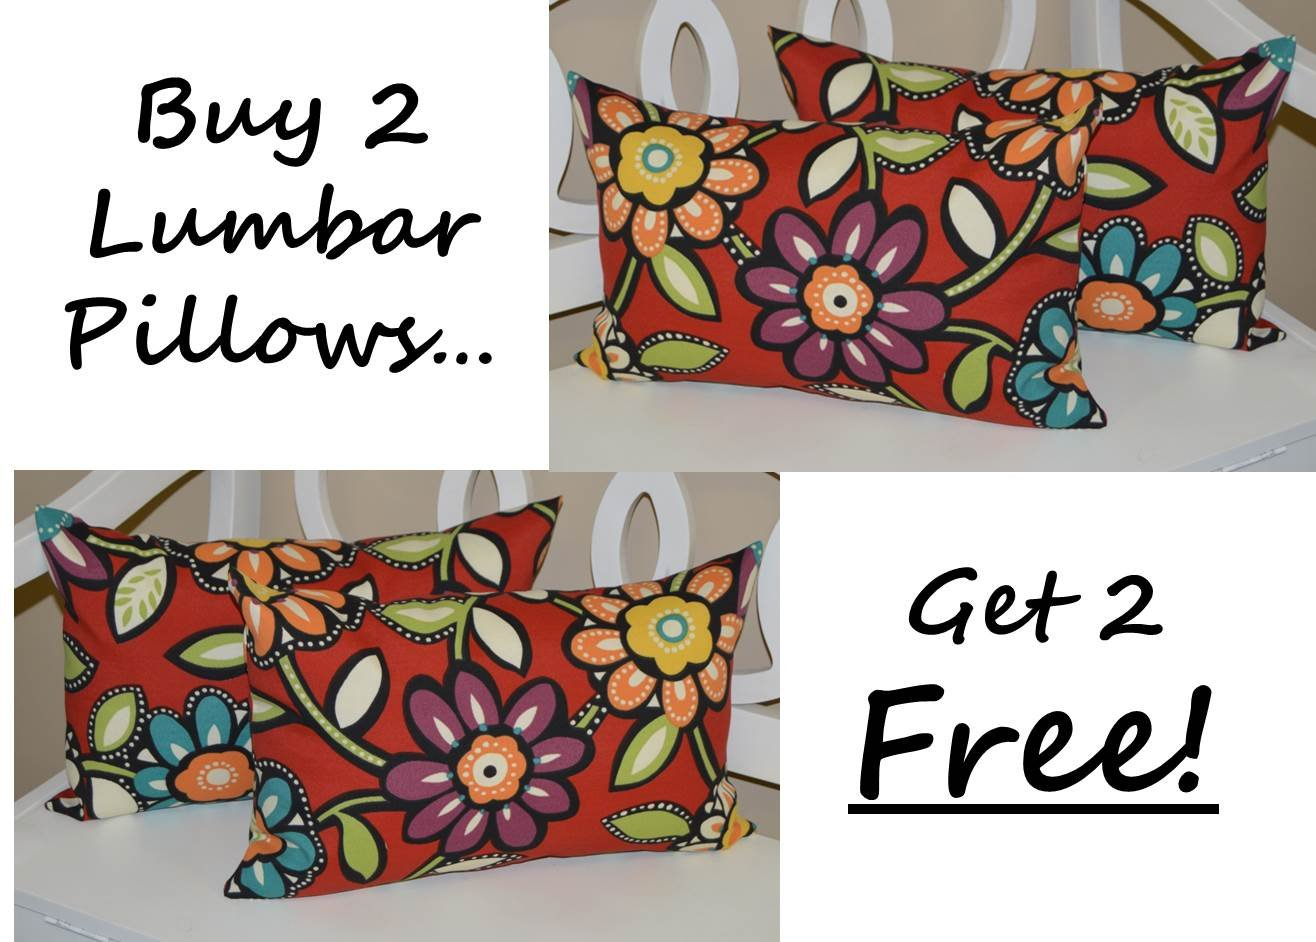 Set of 2 – Indoor Outdoor Decorative Lumbar Rectangle Pillows 2 Free – Red, Yellow, Blue, Green Contemporary Floral